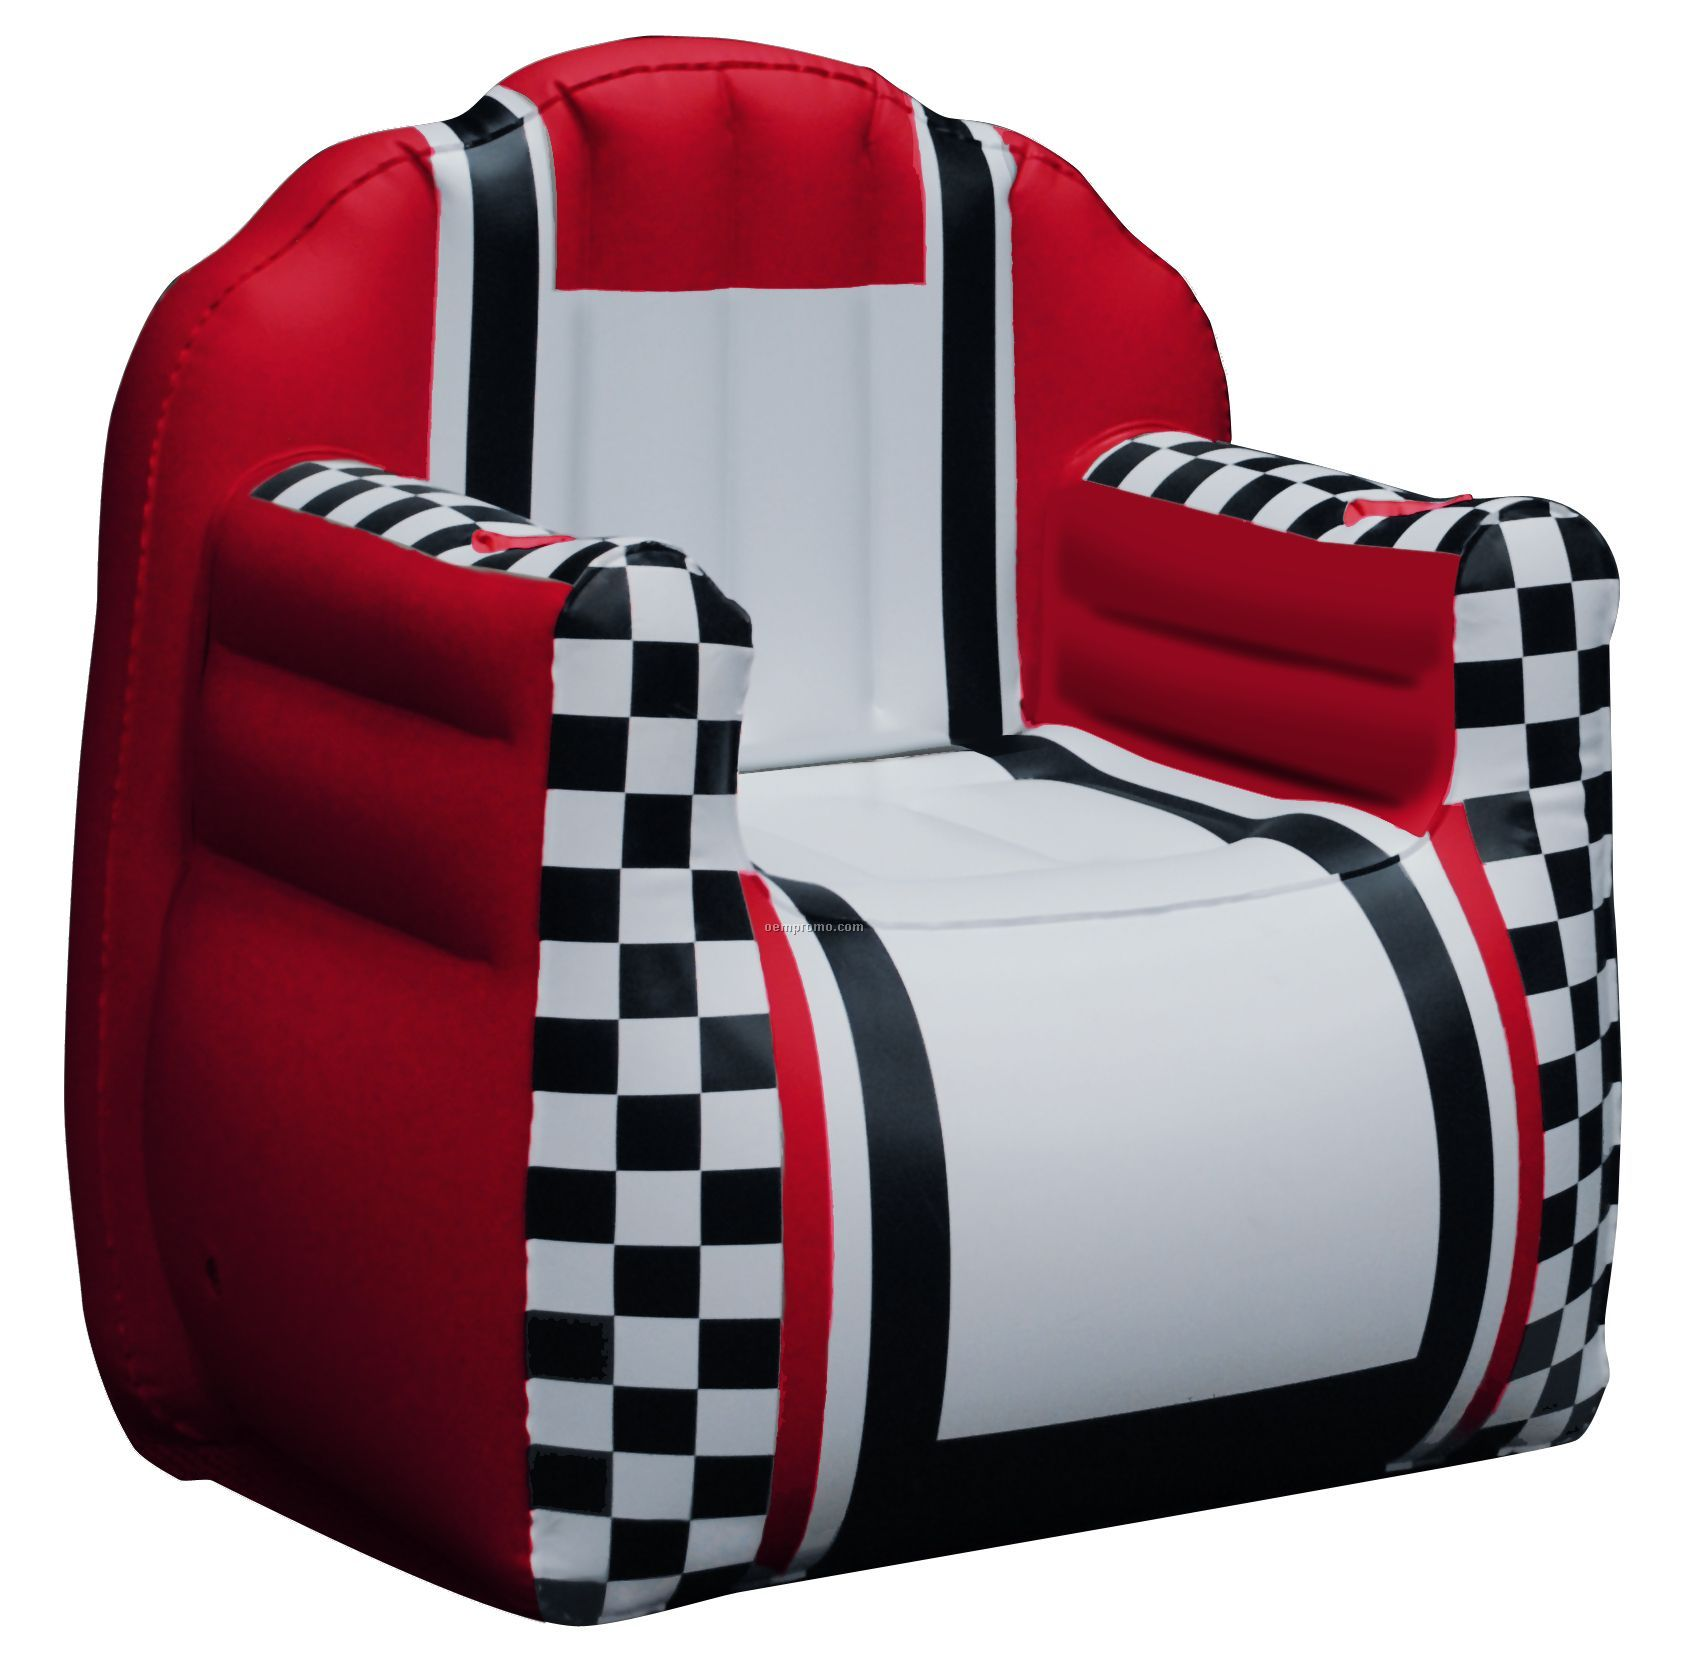 Inflate A Seat Quot Chair Quot Red White Black With Checkered